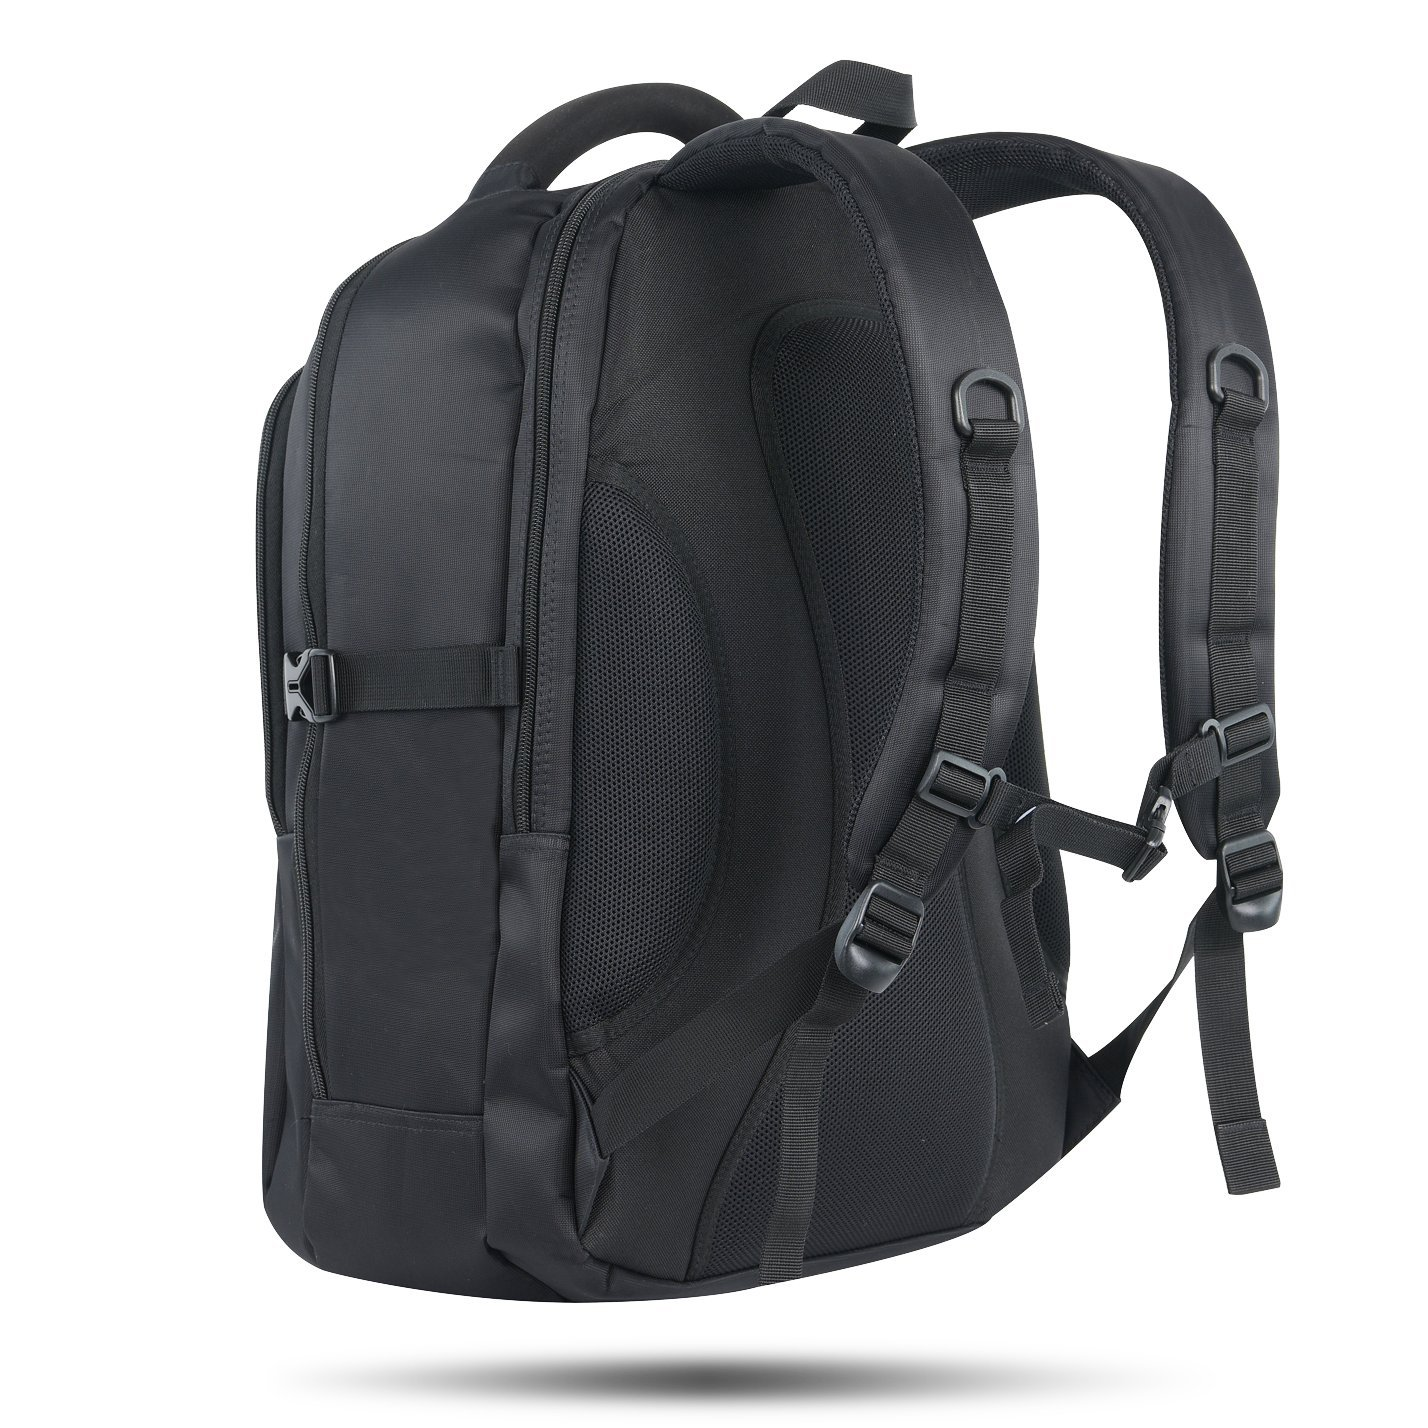 3335399e47 JOTHIN B725 Travel Business Laptop Backpack for Men Extra Large Rugged 17  inch Notebook Computer (Black)  Amazon.co.uk  Sports   Outdoors